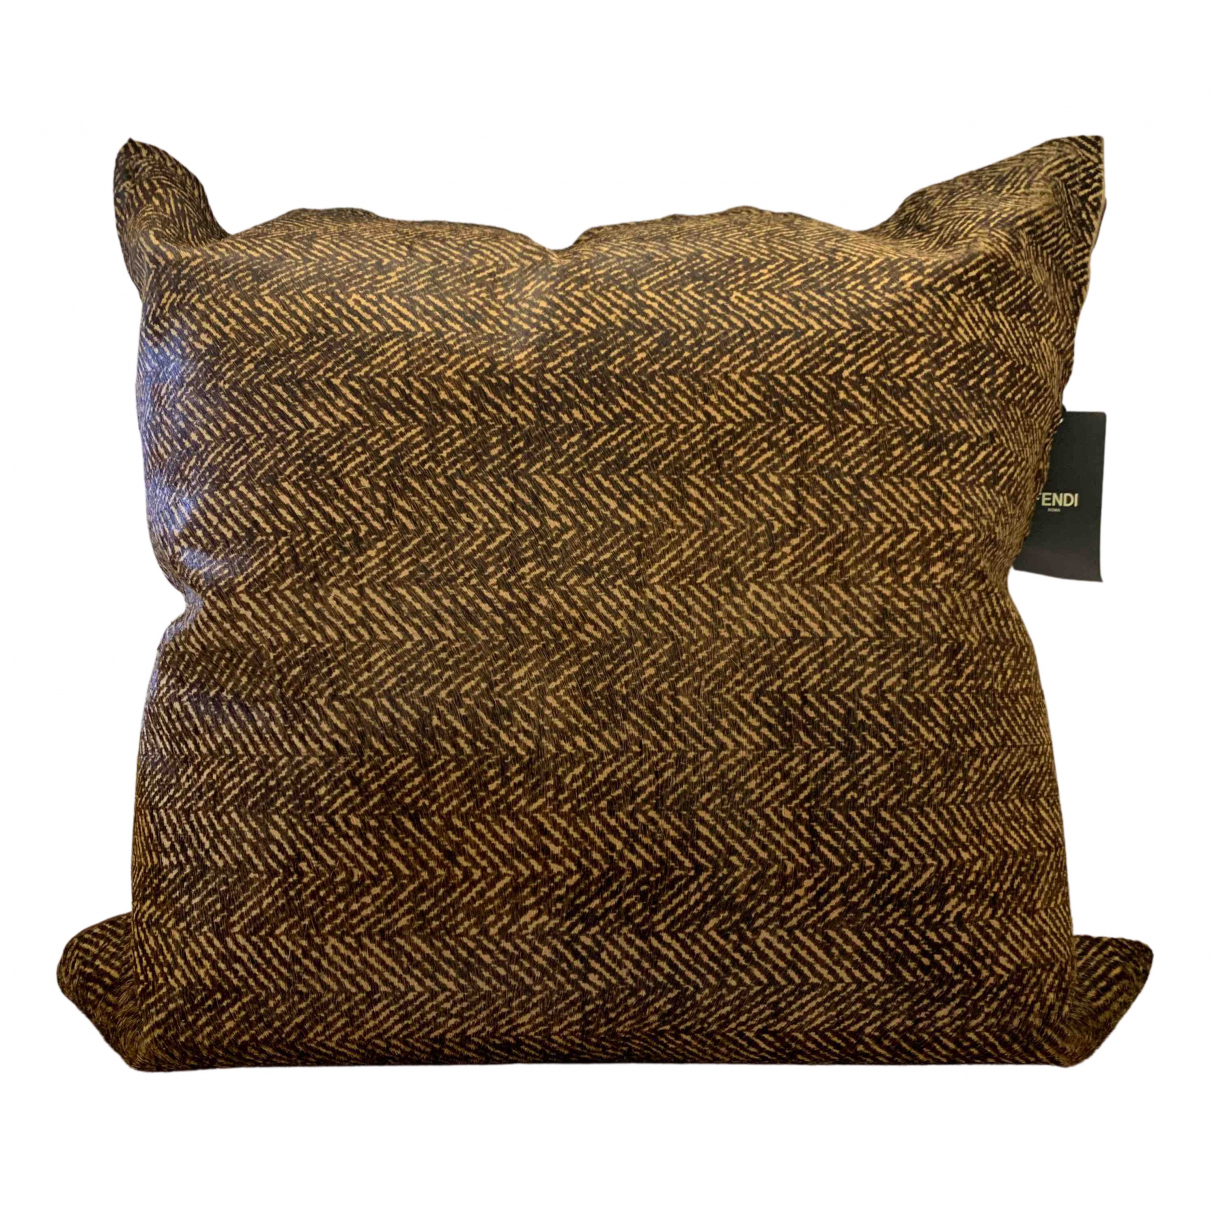 Fendi N Brown Leather Textiles for Life & Living N